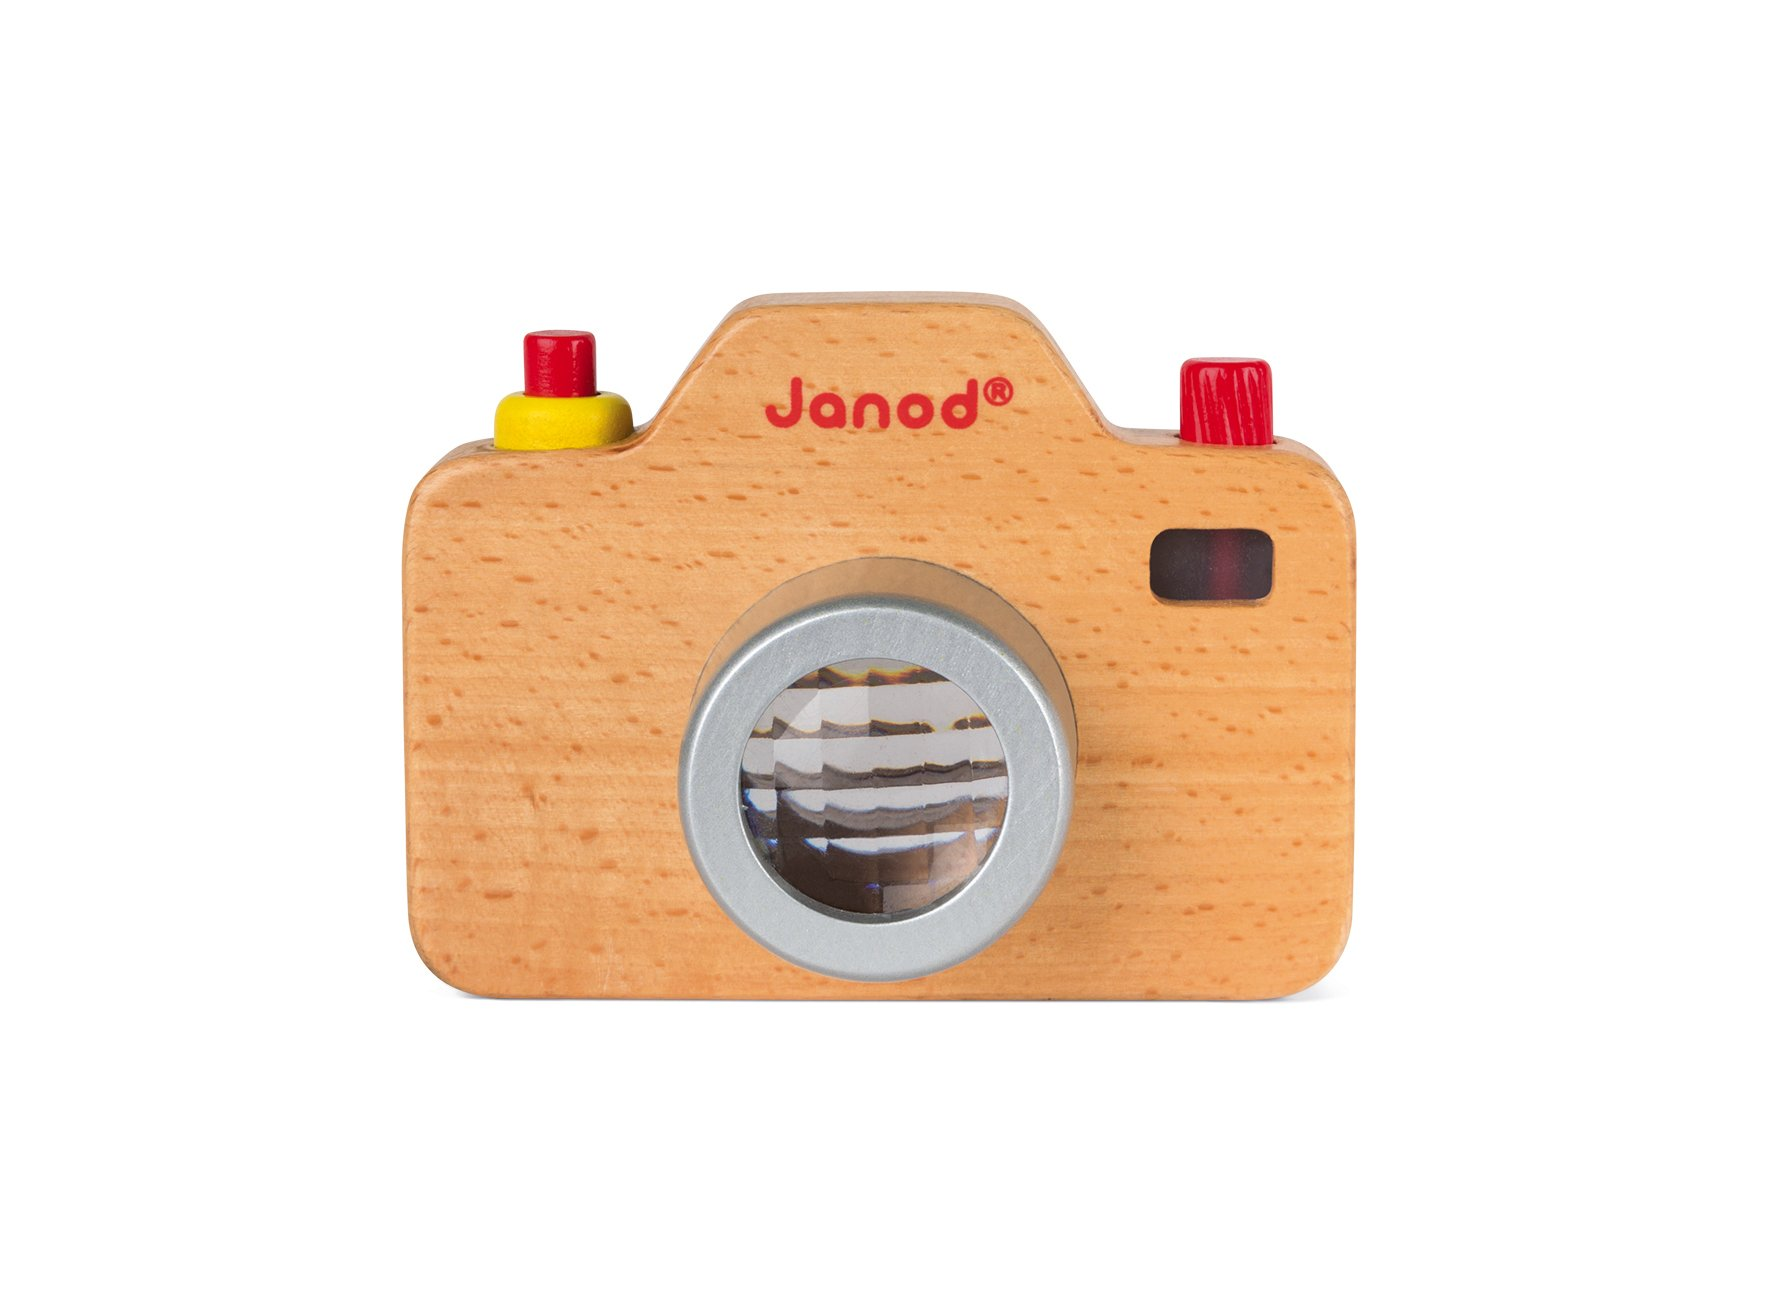 Janod Wooden Interactive Sound Camera Toy by Janod (Image #2)